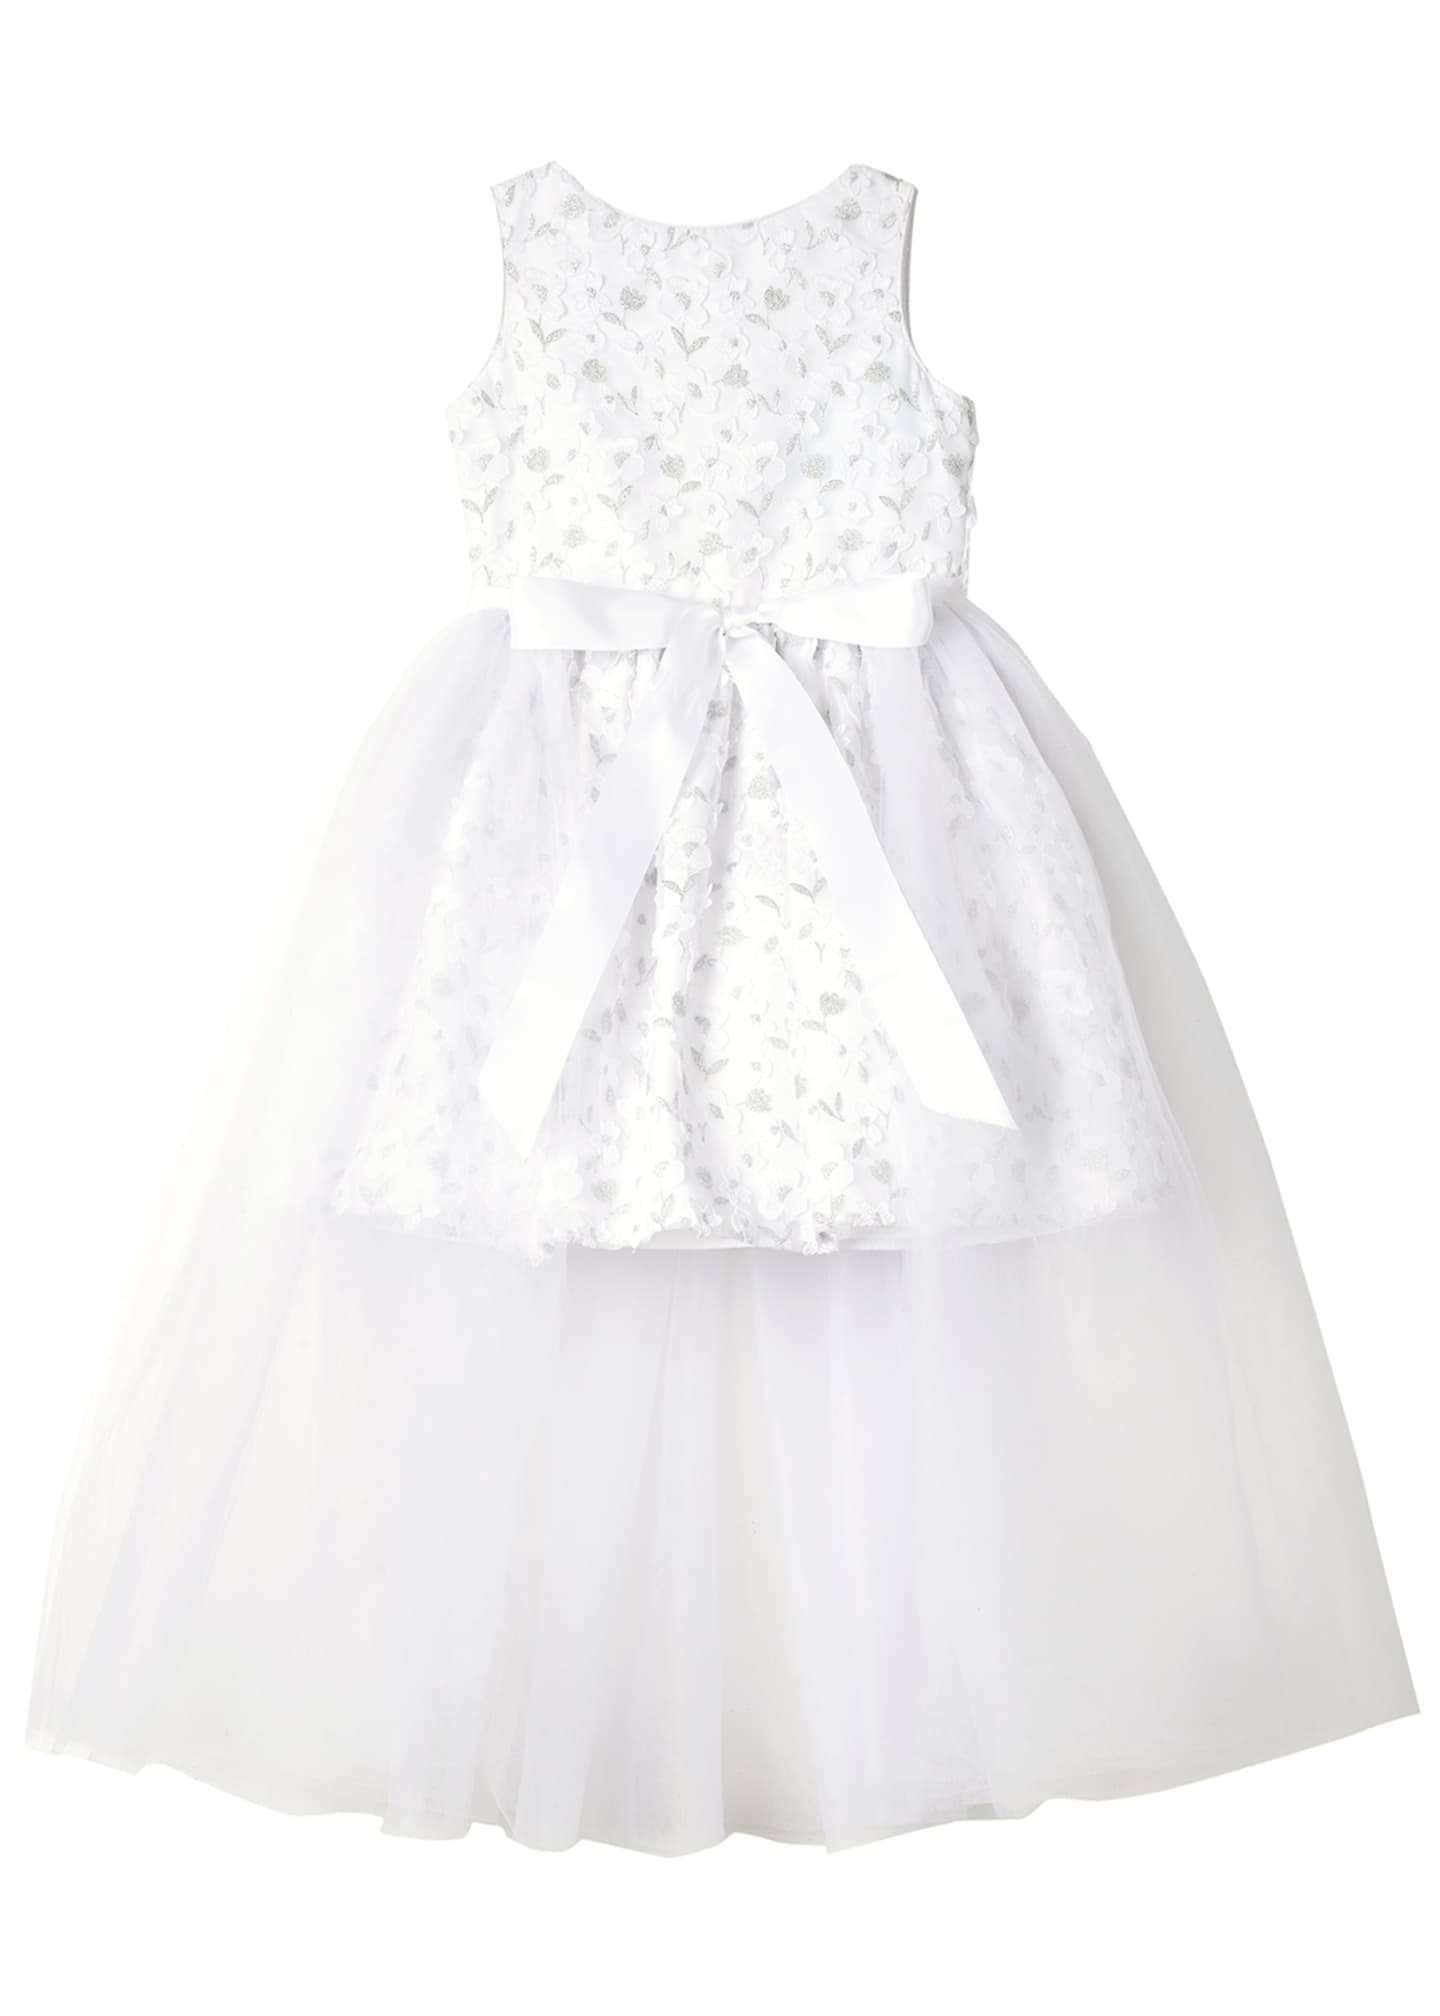 Badgley Mischka Kid's Short Lace Dress w/ Open